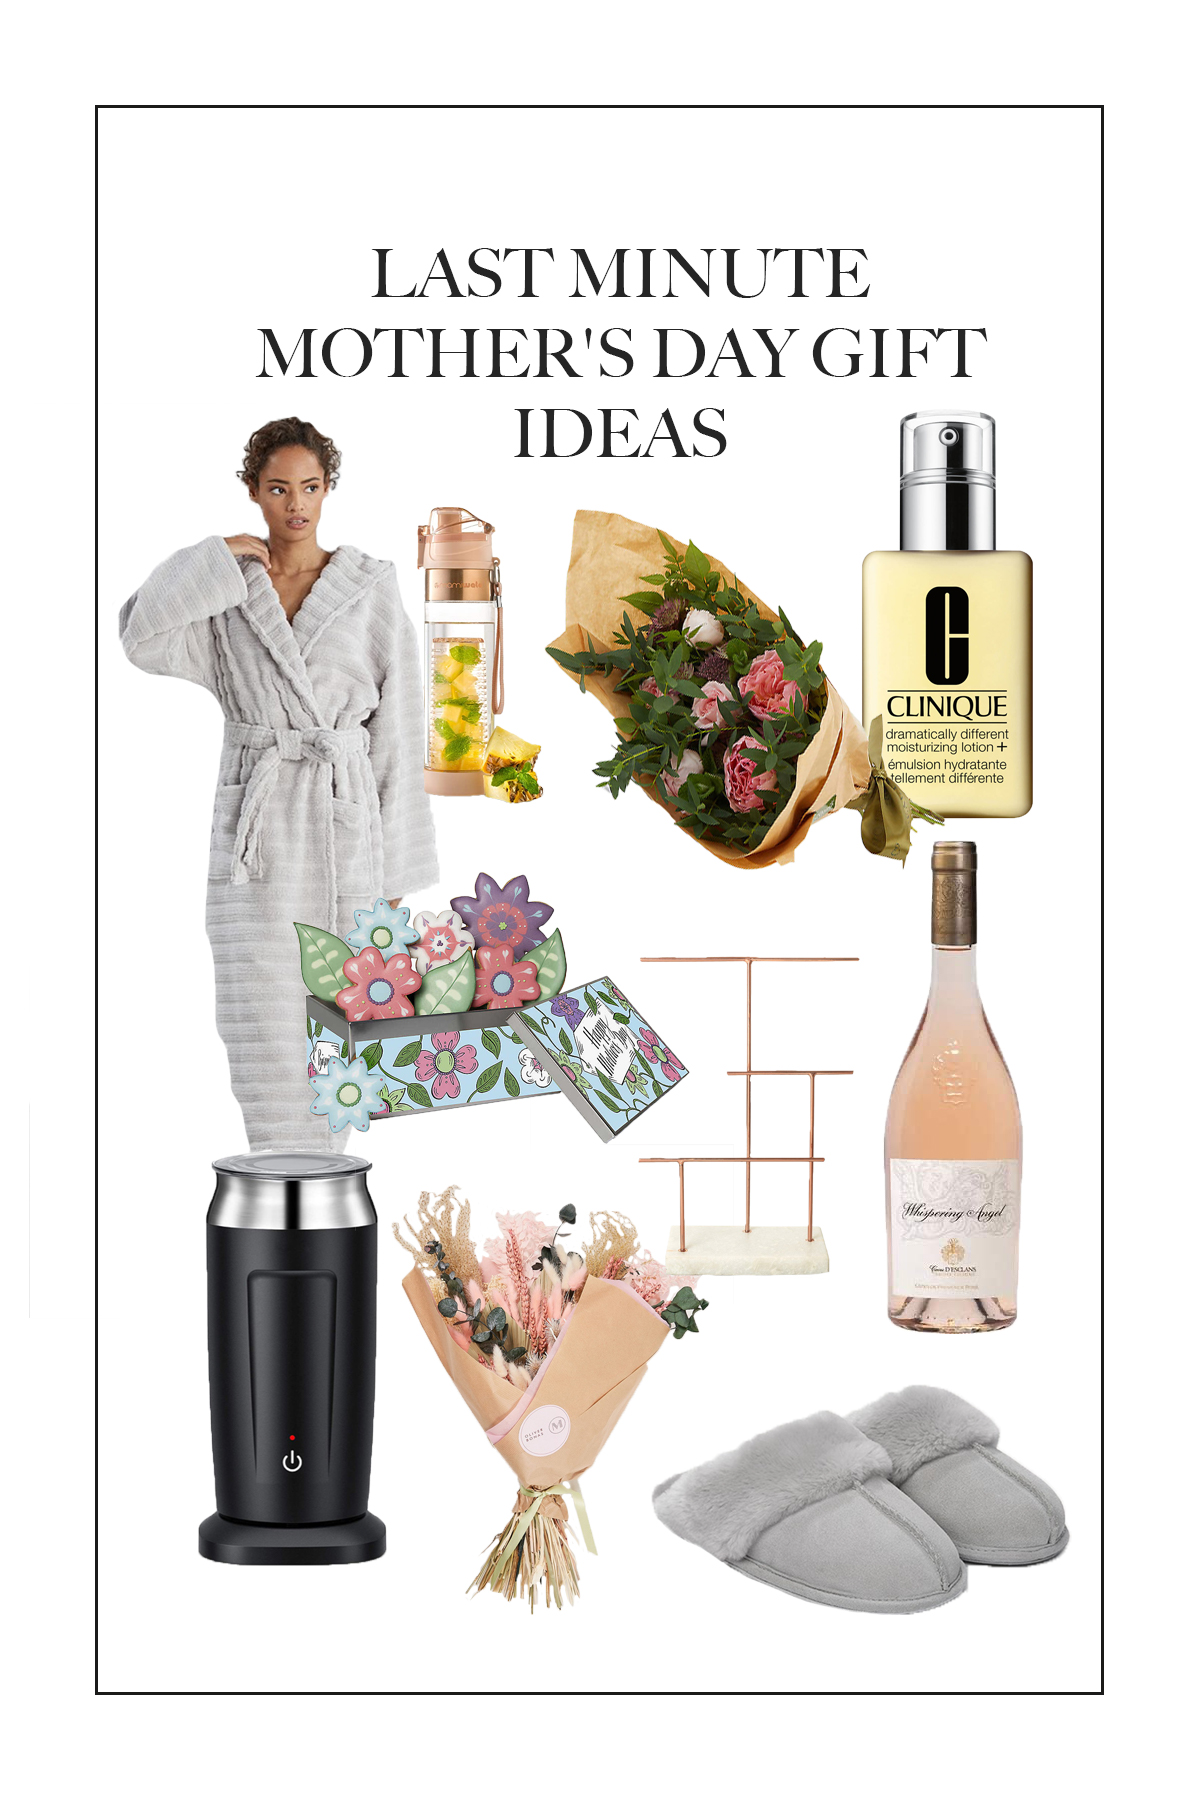 Here are some great options for last minute Mother's Day gift ideas ...